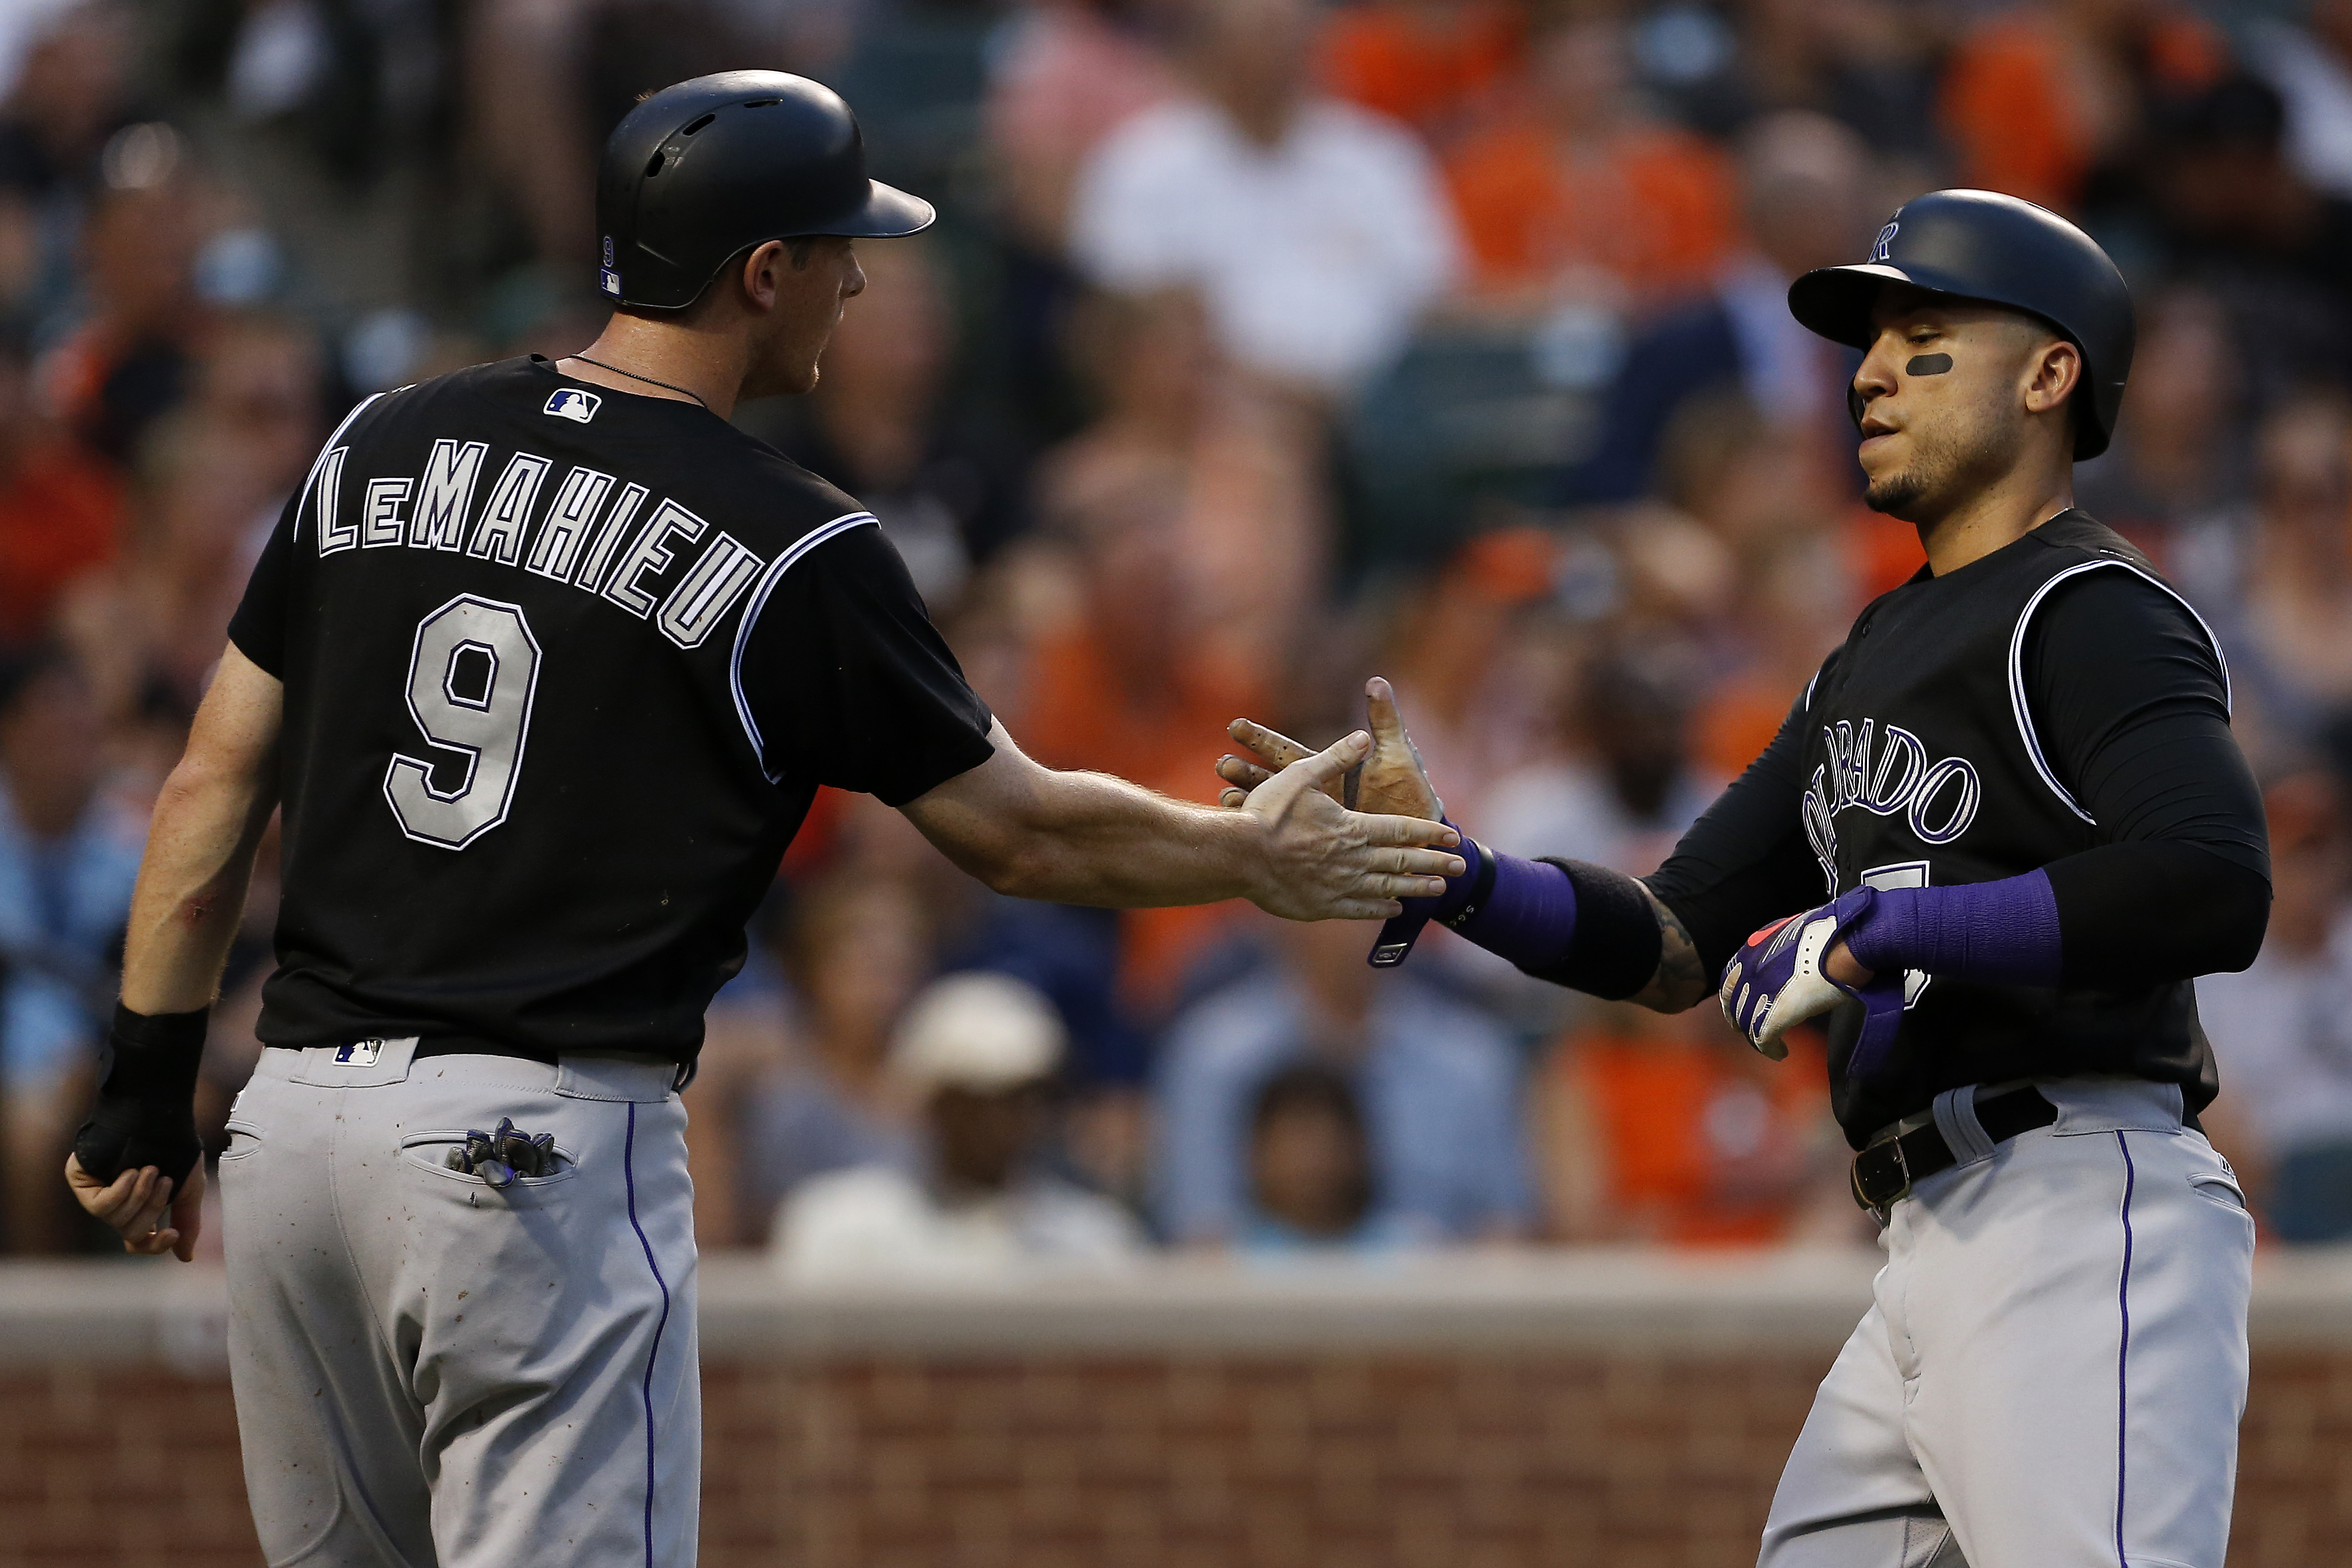 Carlos Gonzalez #5 of the Colorado Rockies celebrates with teammate DJ LeMahieu #9 after scoring in the third inning against the Baltimore Orioles at Oriole Park at Camden Yards on July 26, 2016 in Baltimore, Maryland. (Photo by Matt Hazlett/Getty Images)